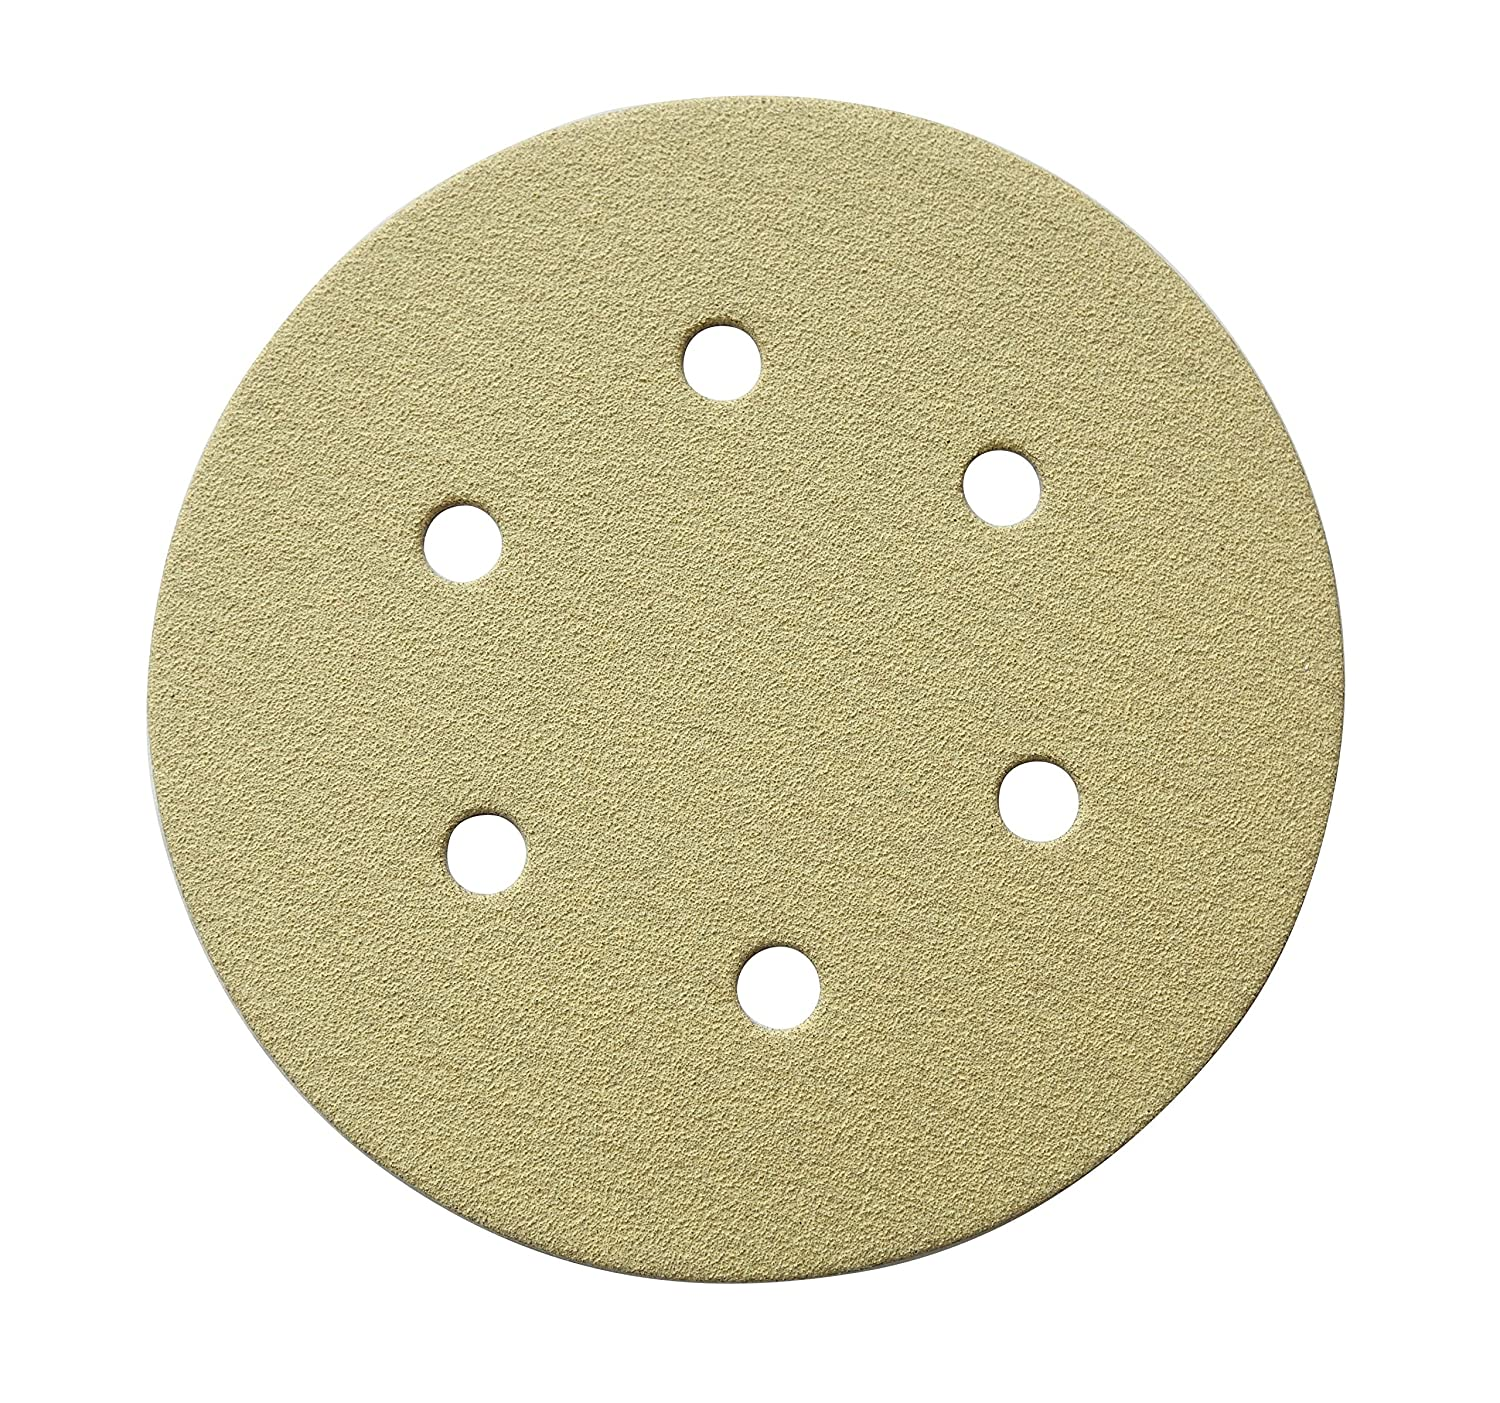 POWERTEC 45208G-50 6-Inch 6 Hole 80 Grit Hook and Loop Sanding Discs, Gold, 50-Pack